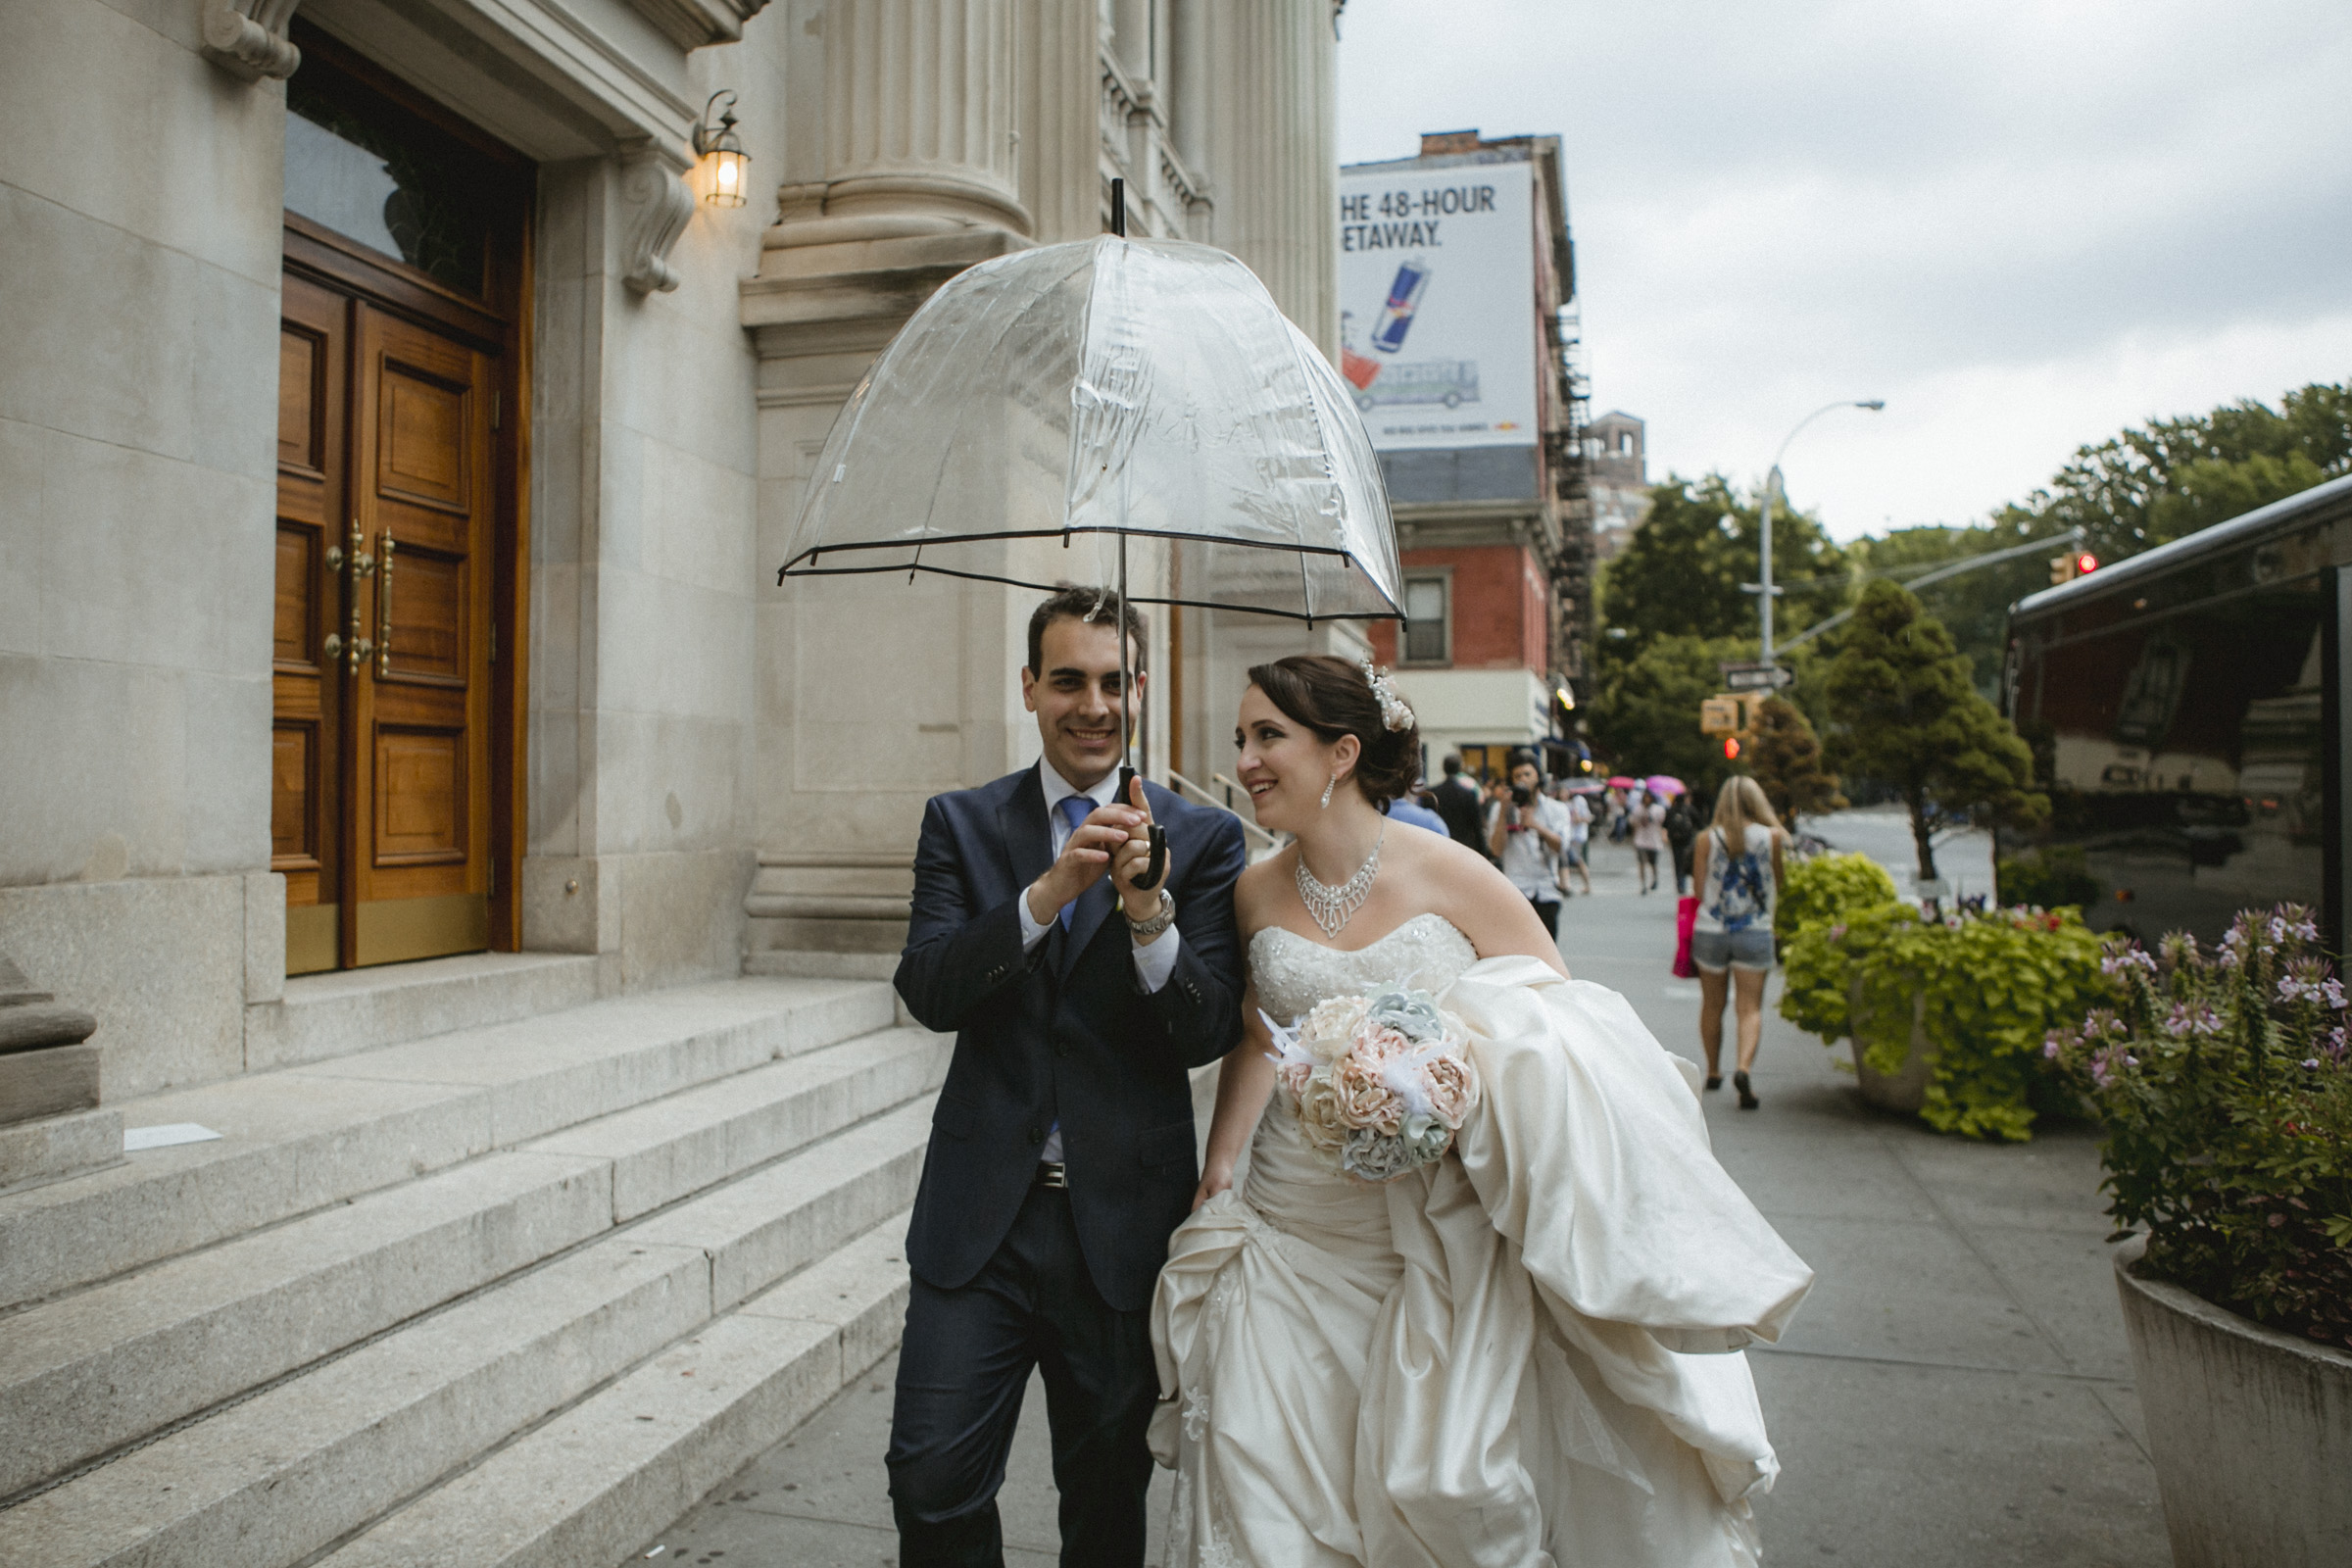 Newly weds share an umbrella out side the church after ceremony | Our Lady of Pompeii wedding | Manhattan wedding | Bronx Wedding | Cathy & Antonello's wedding | Amy Sims Photography